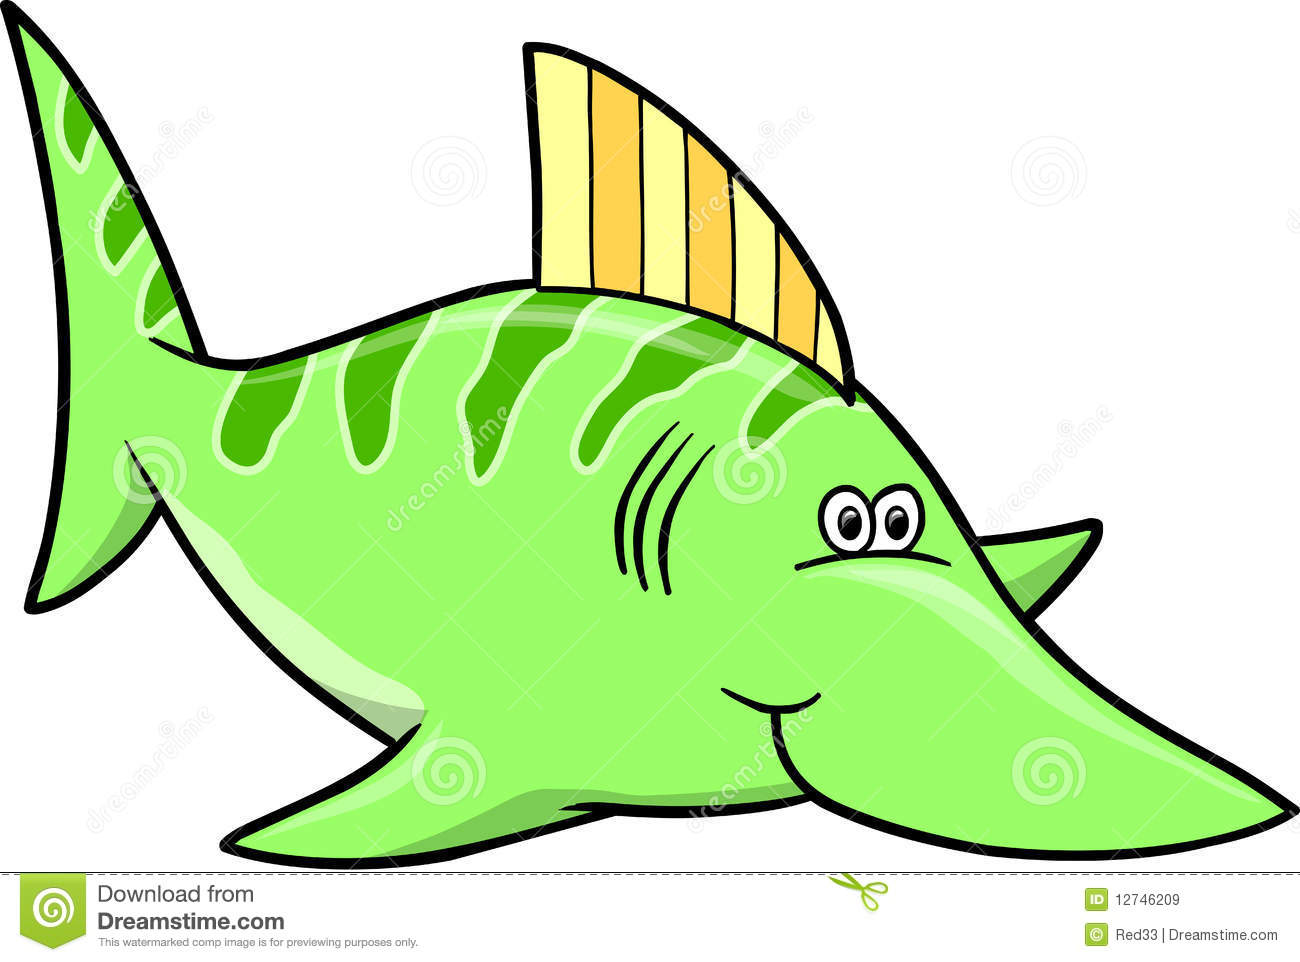 Clipart Fish at GetDrawings.com | Free for personal use Clipart Fish ...